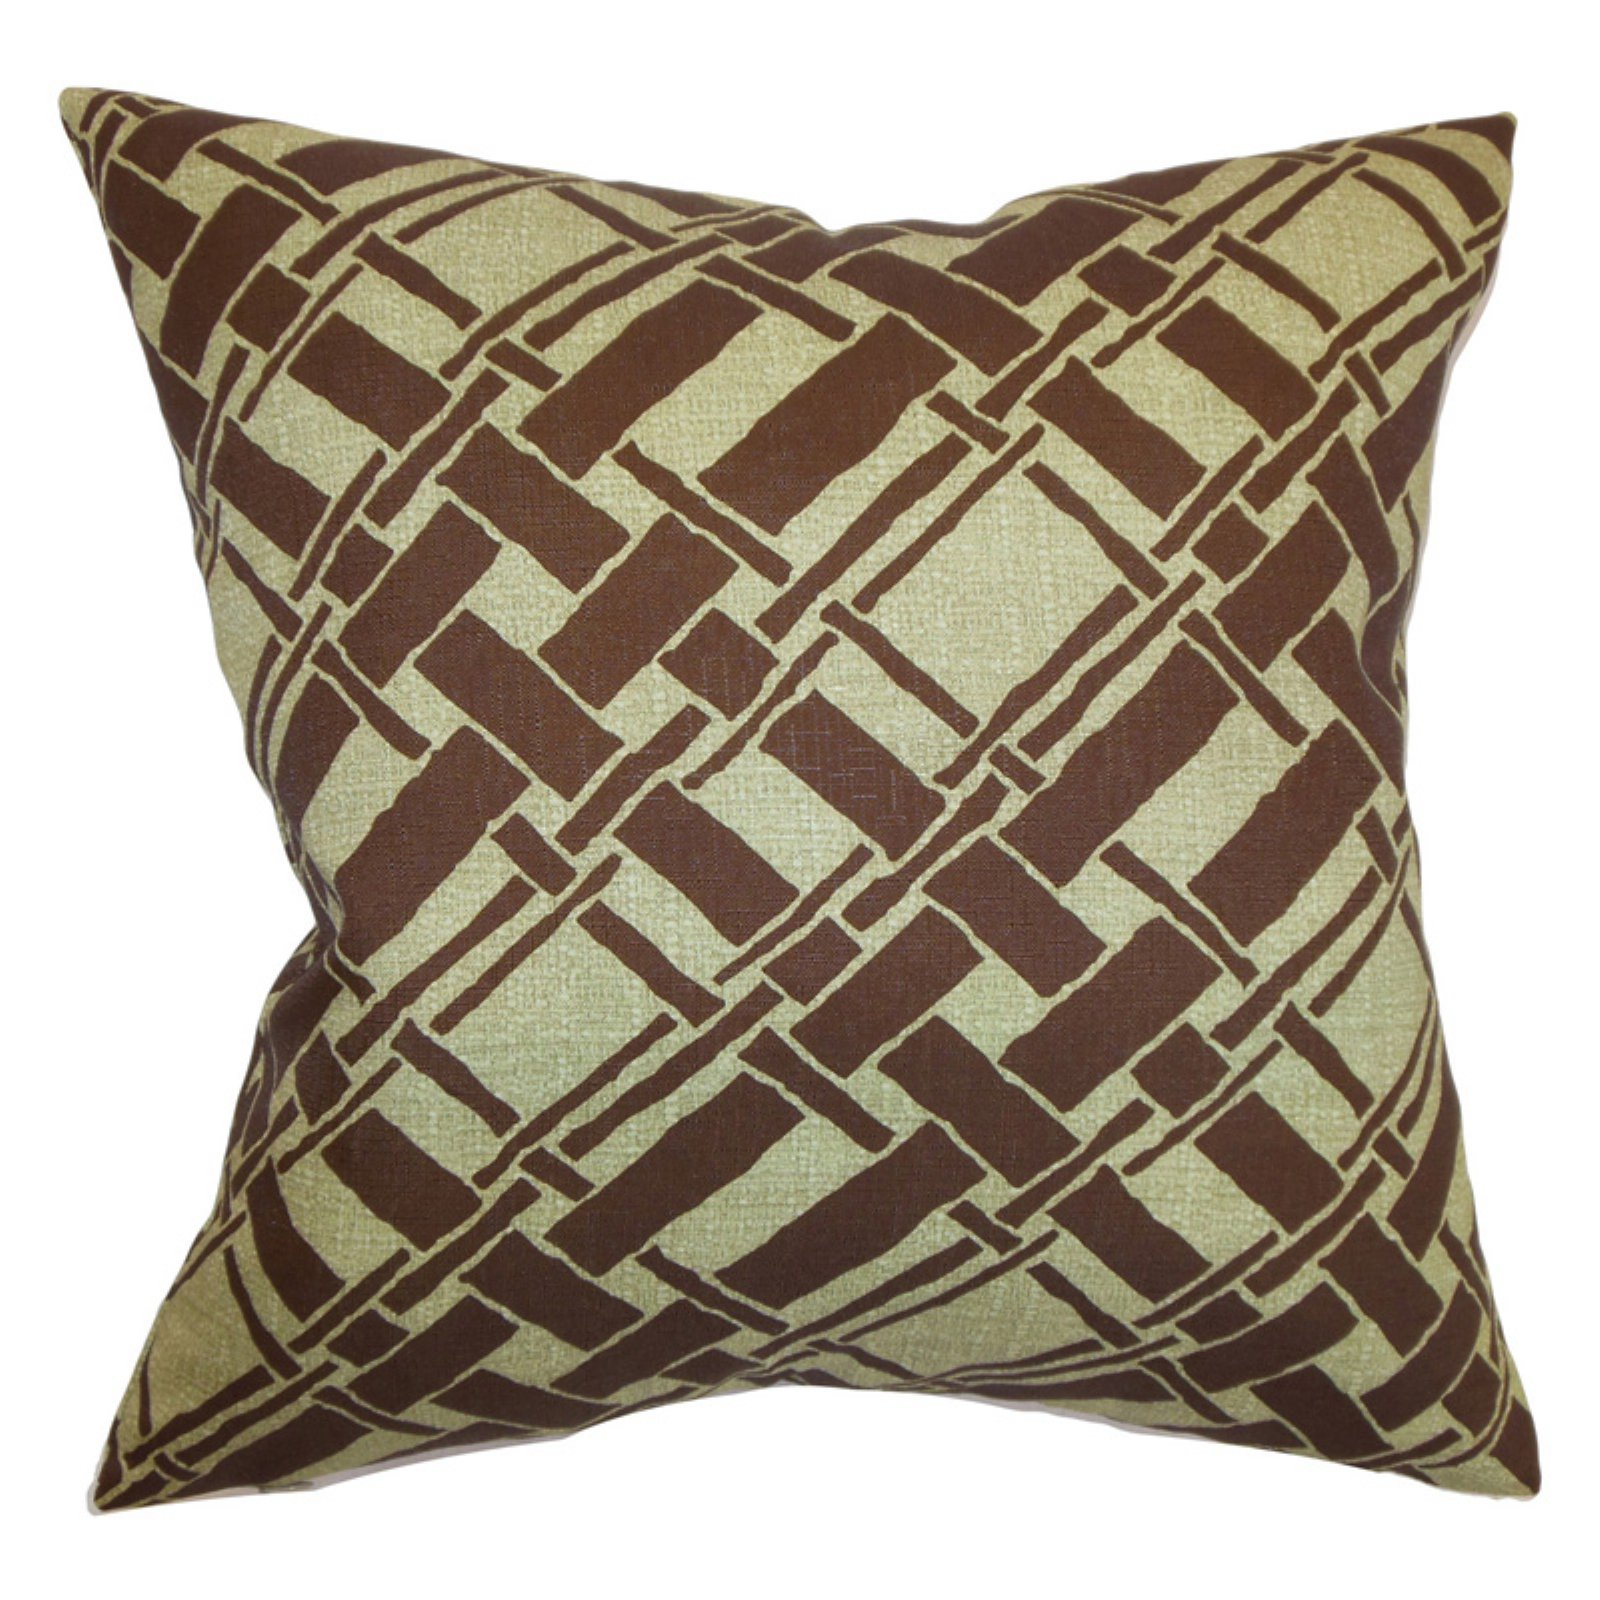 The Pillow Collection Rygge Bamboo Pillow